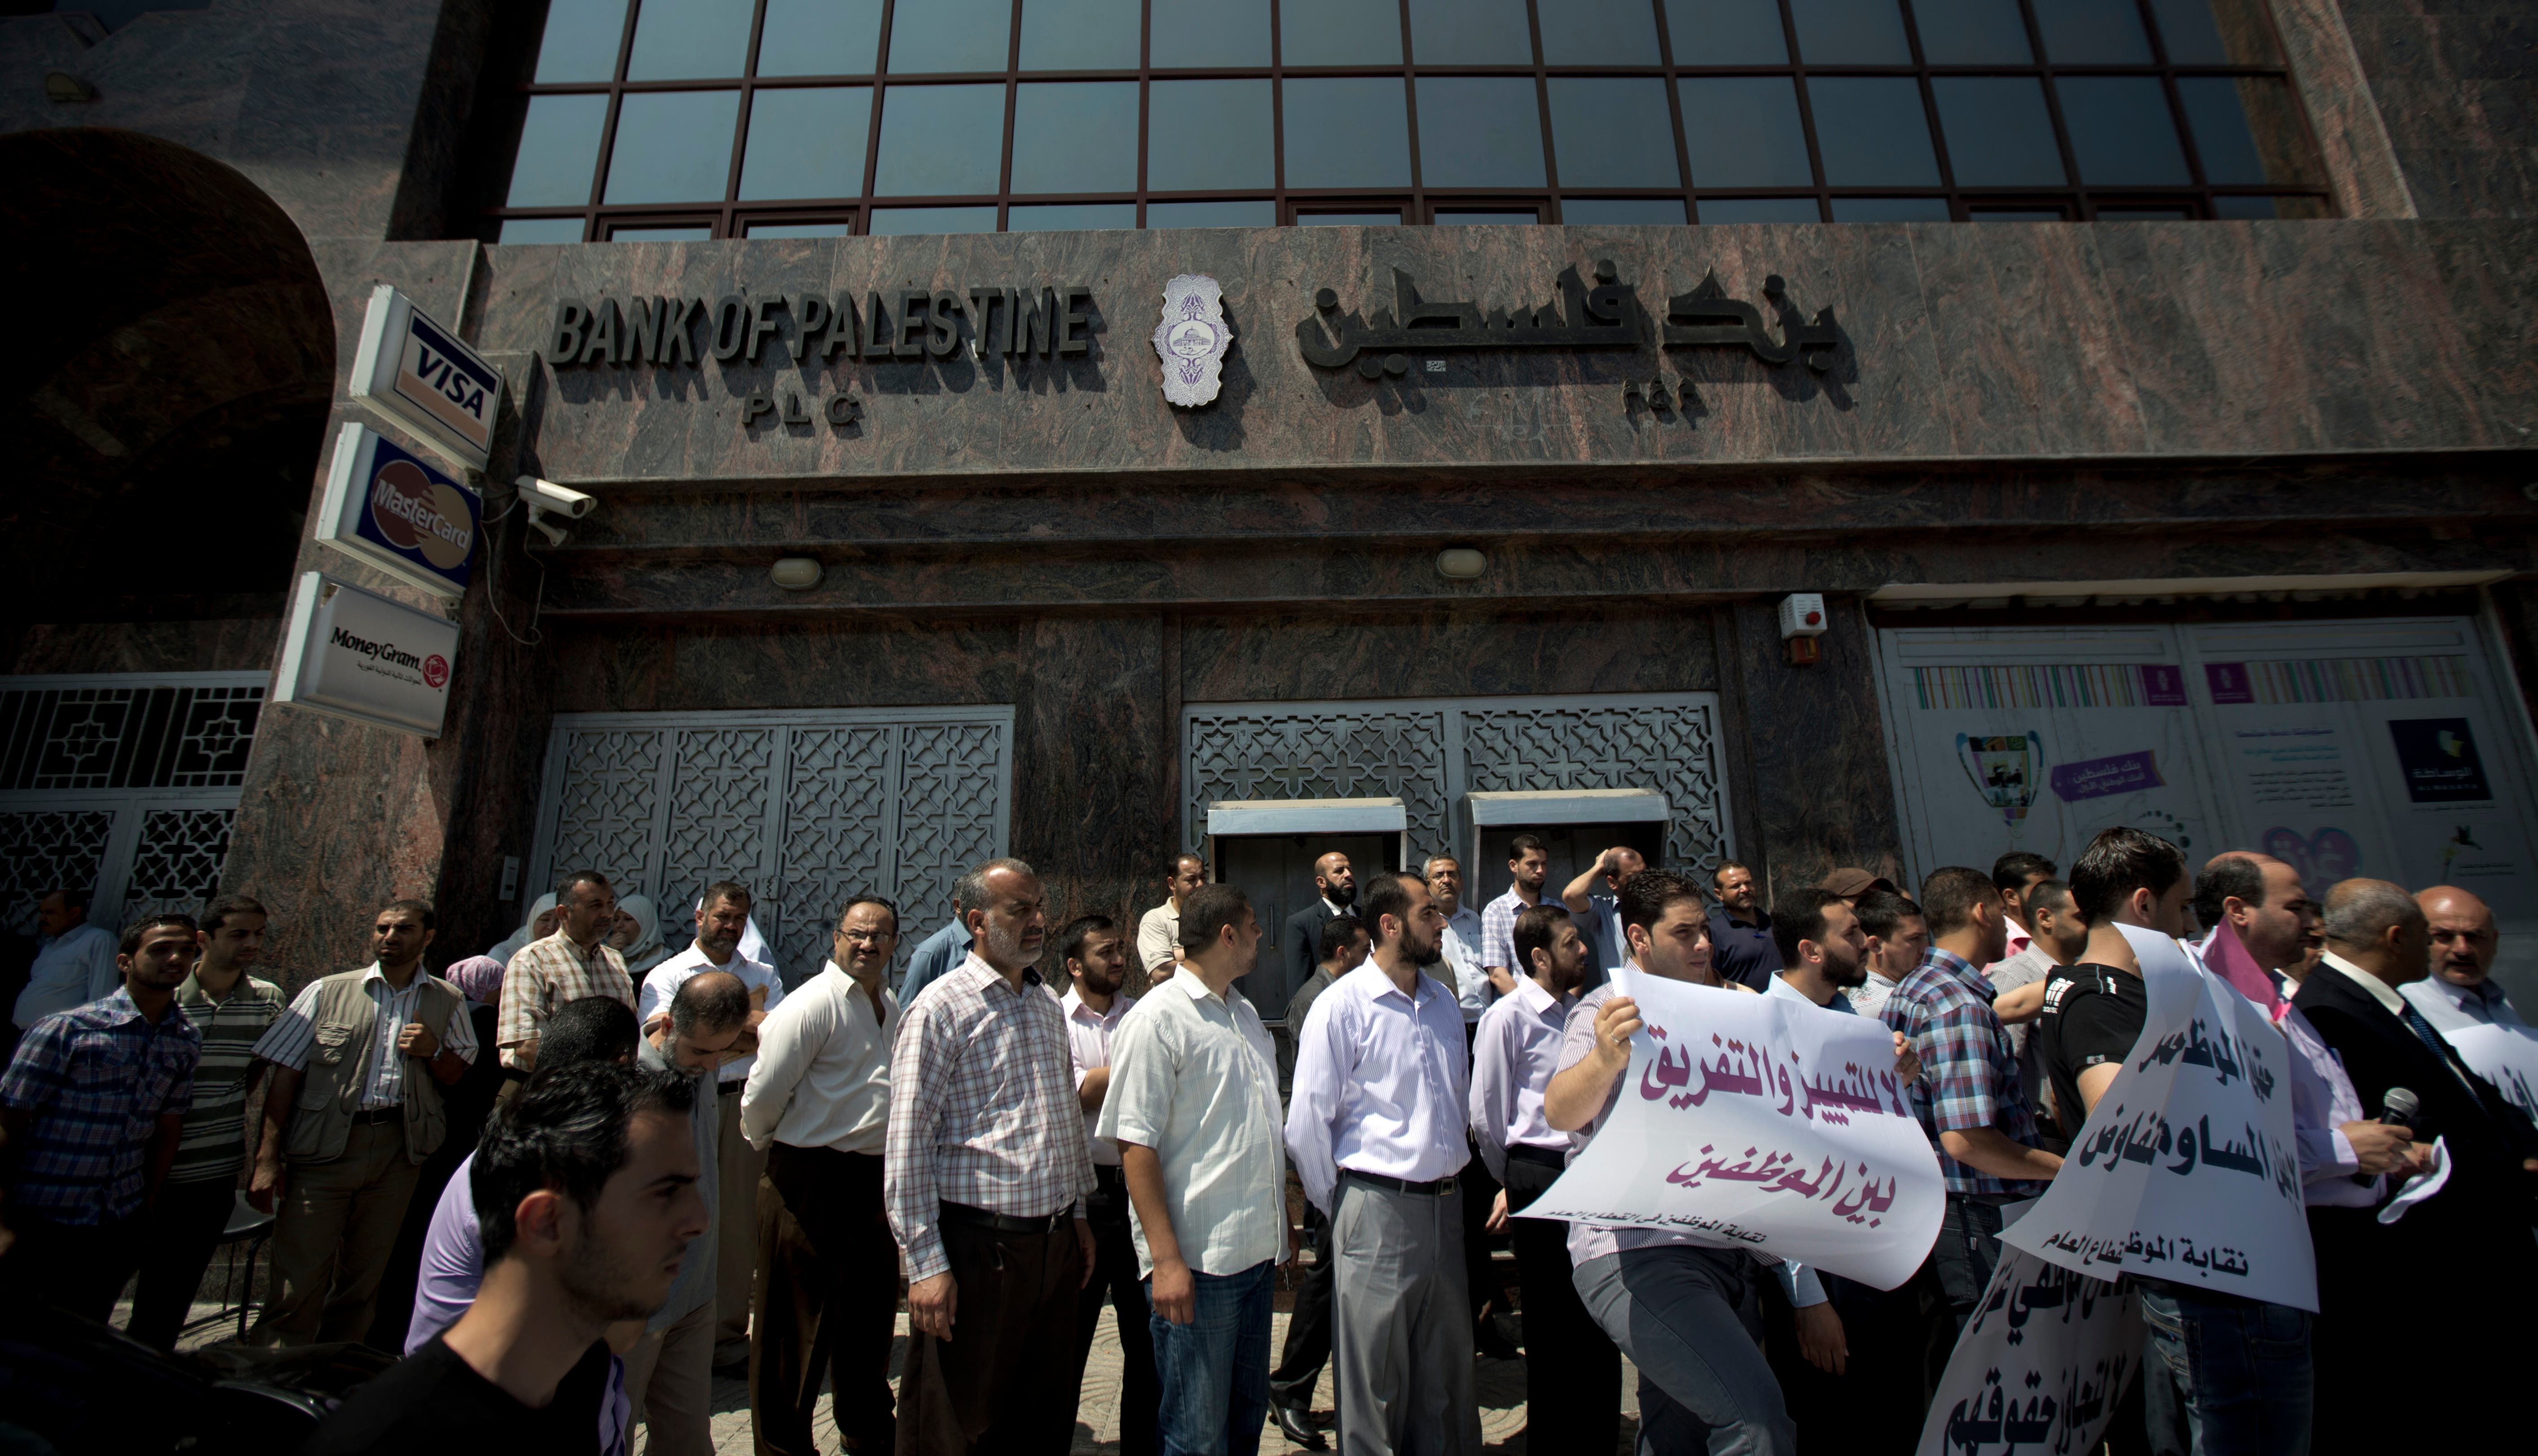 The banking crisis started last Wednesday with Hamas-affiliated police officers preventing PA employees from collecting their wages (AFP/ File).